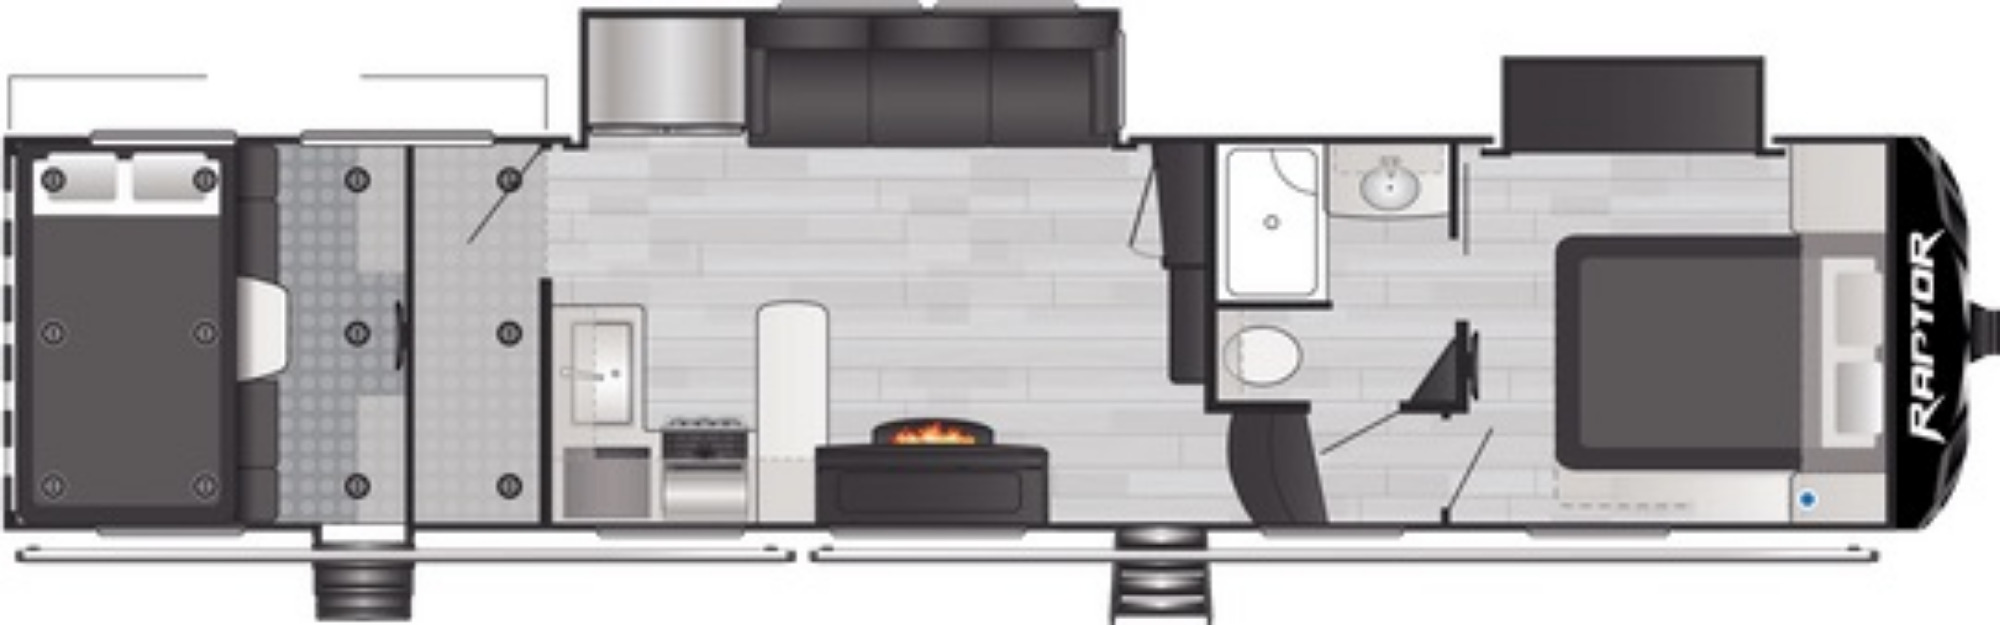 View Floor Plan for 2021 KEYSTONE RAPTOR 351